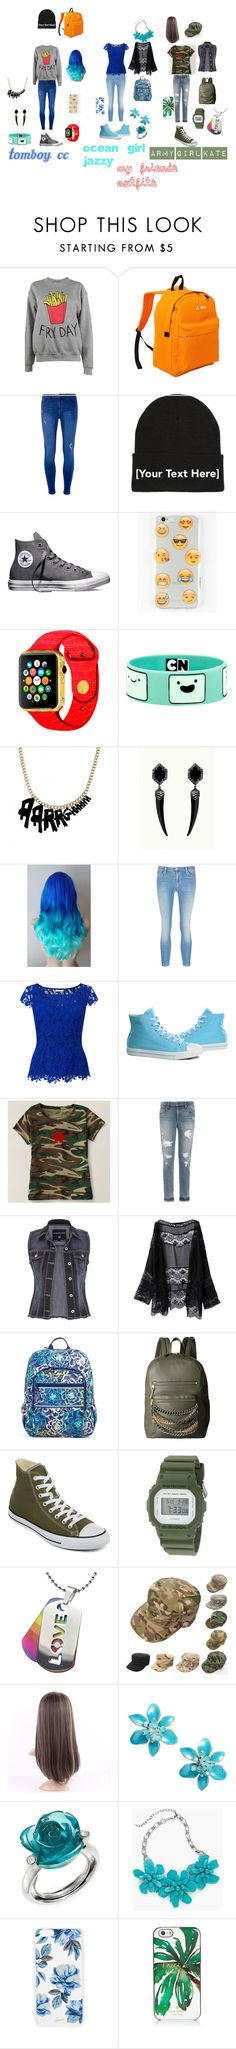 """my friends out fits"" by lixxy92 ❤ liked on Polyvore featuring Adolescent Clothing, Everest, Dorothy Perkins, Converse, Ankit, Tatty Devine, J Brand, Jacques Vert, Burnetie and Joe's Jeans"